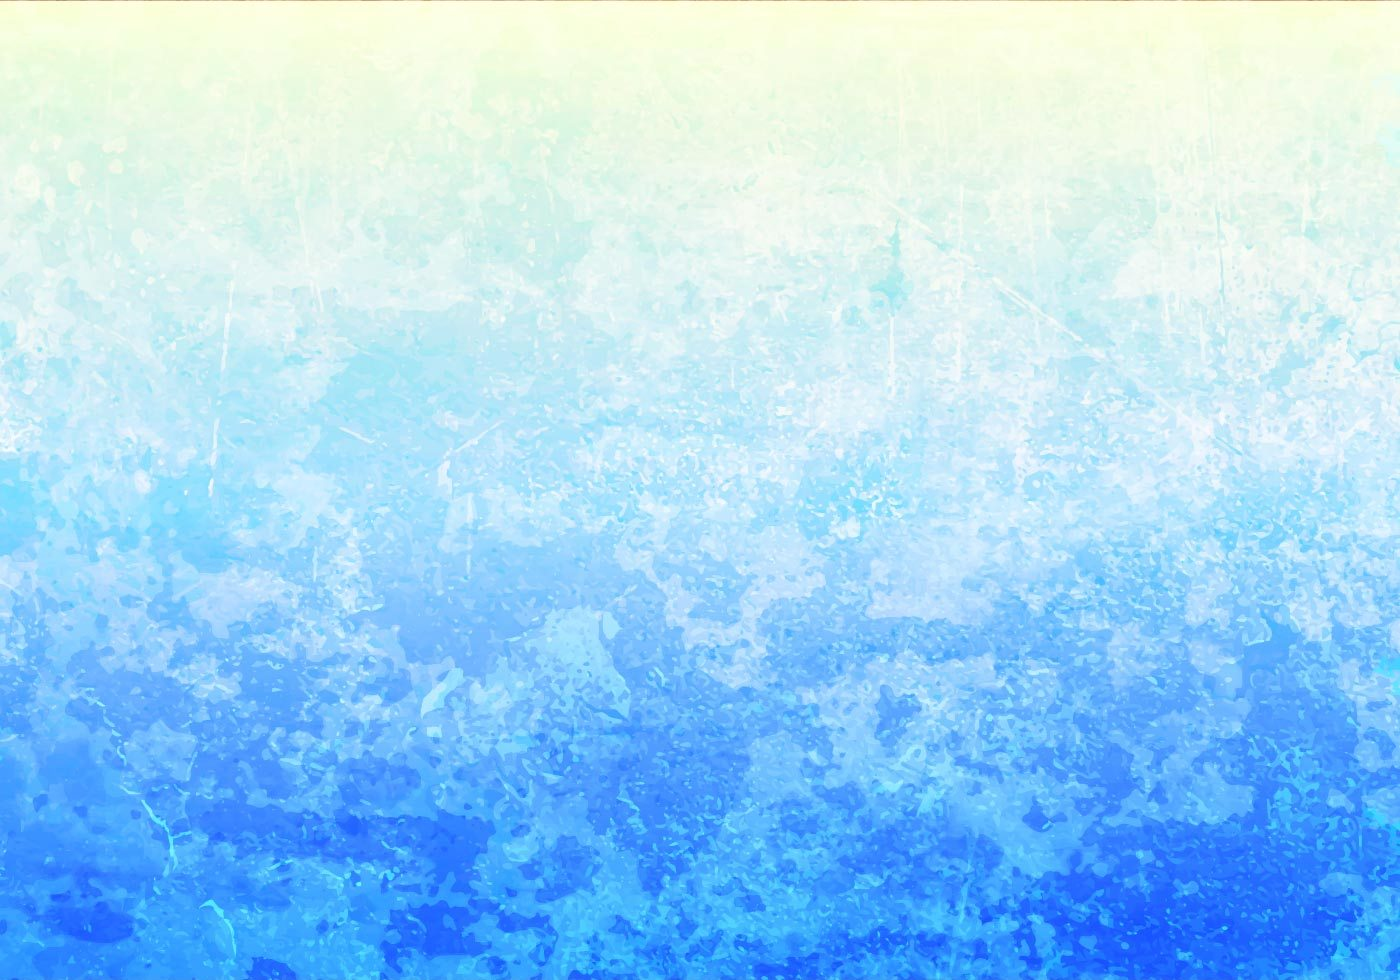 free vector blue grunge background download free vector